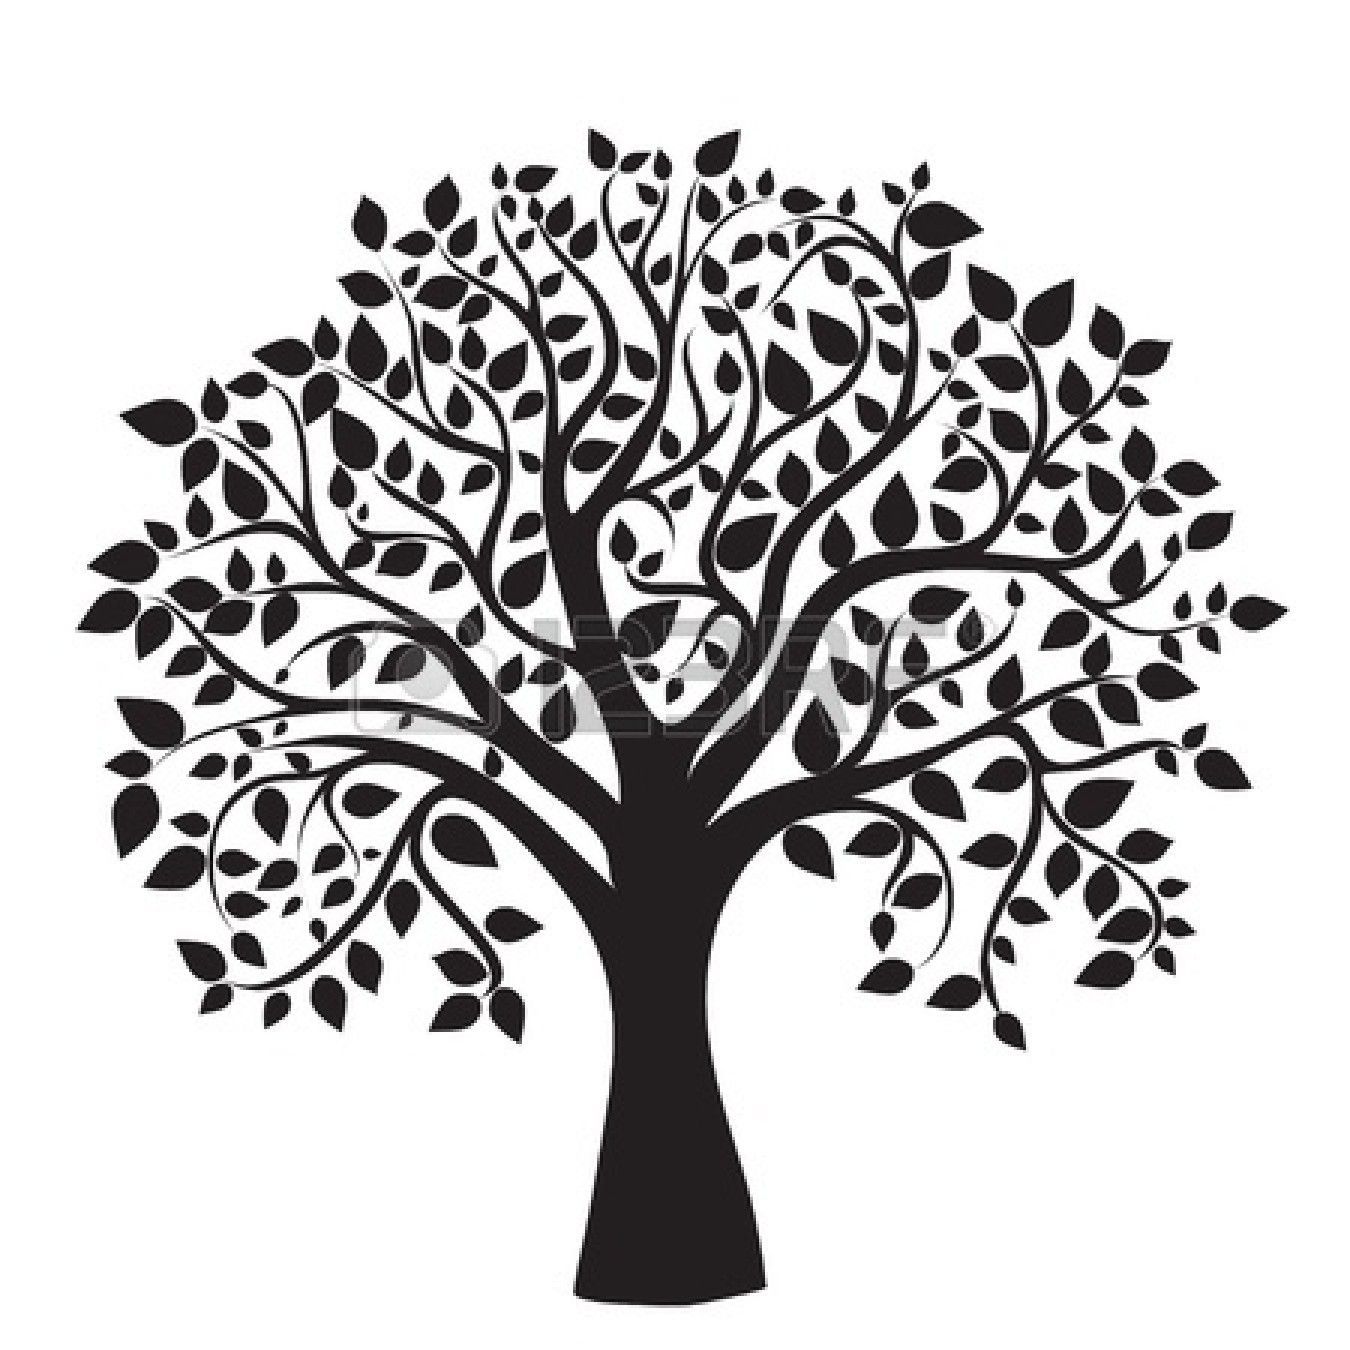 1350x1350 Free Family Tree Clip Clip Art Black And White Family Tree Images